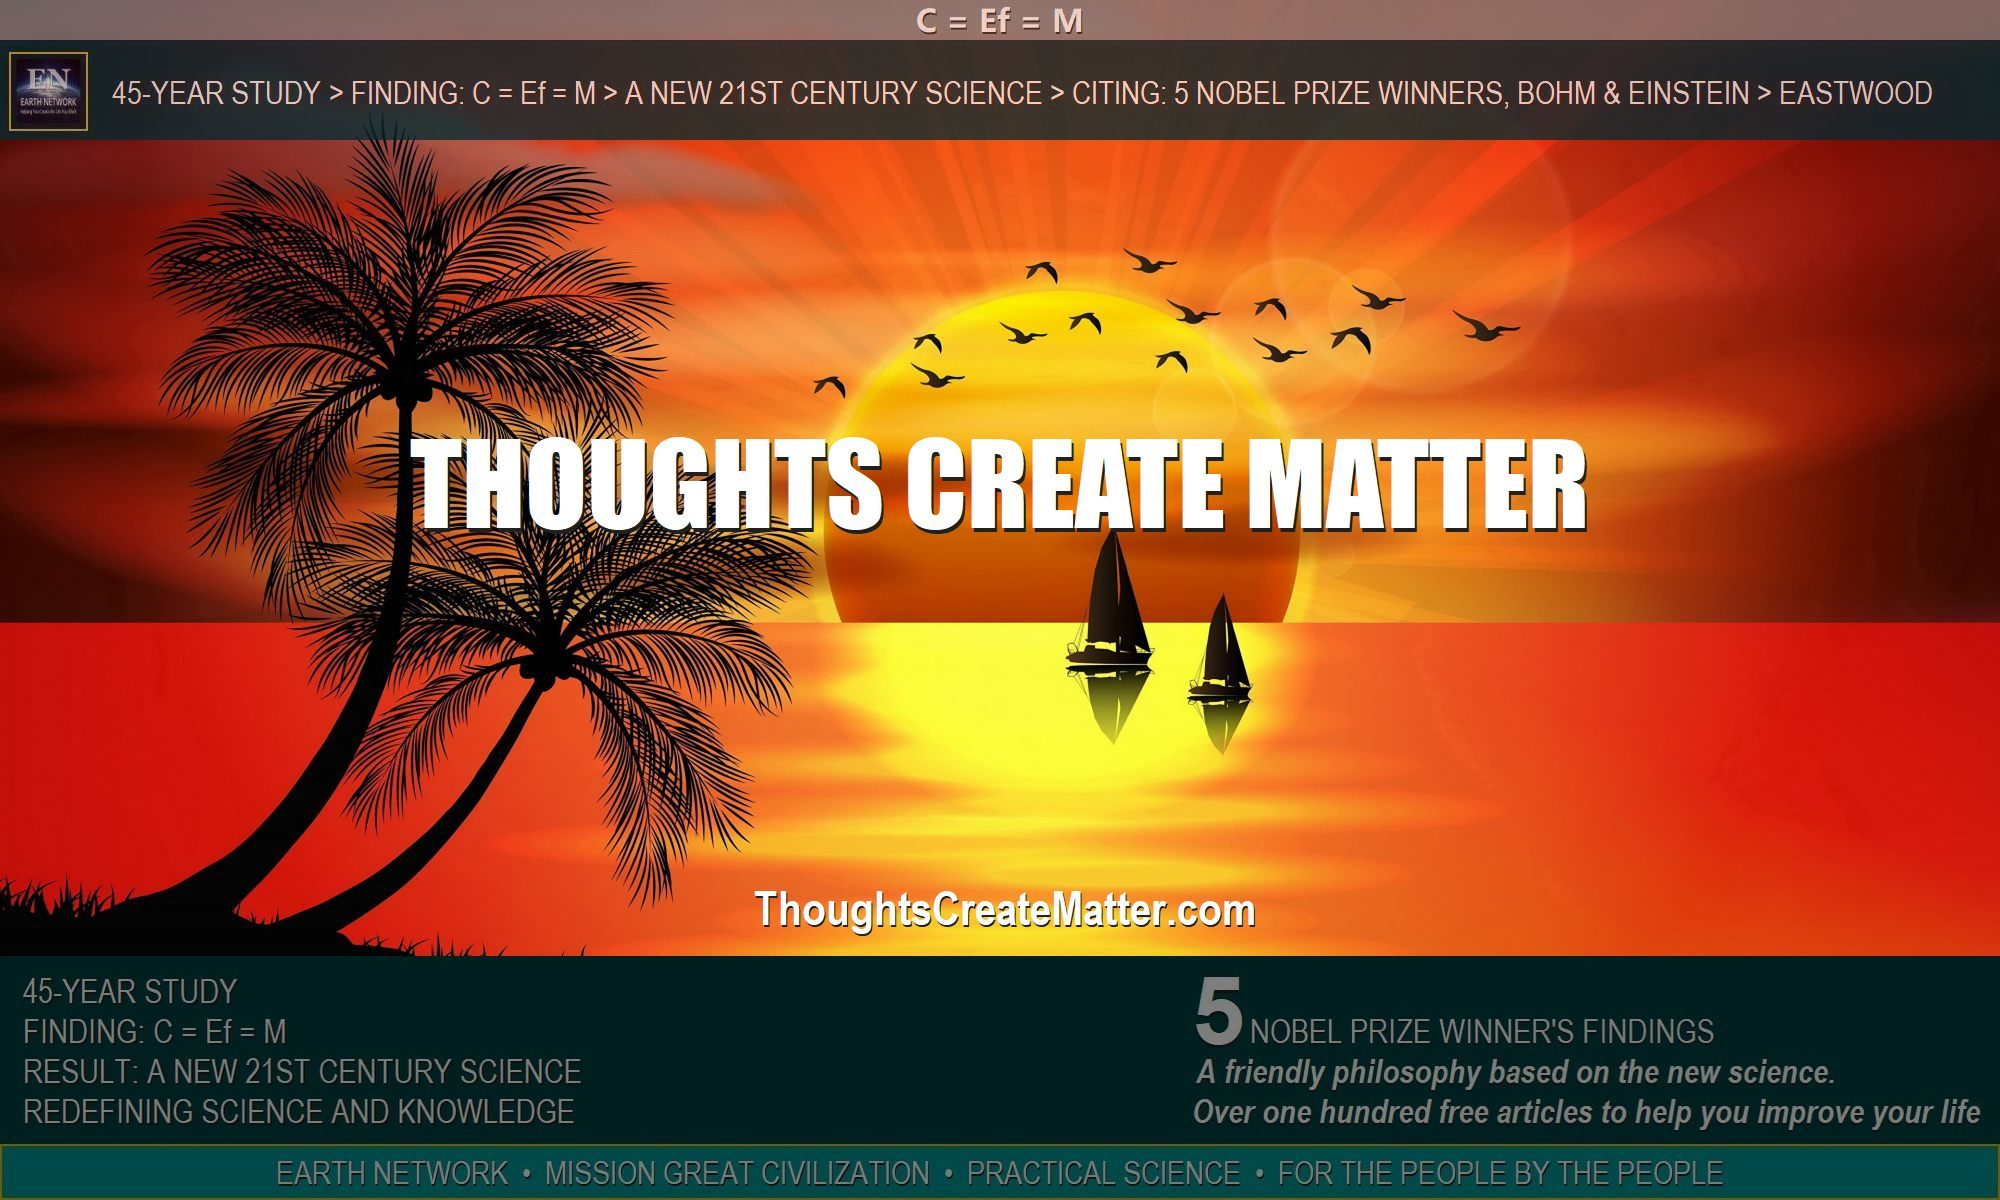 Paradise makes one wonder do-my-thoughts-create-my-reality-can-my-consciousness-manifest-reality